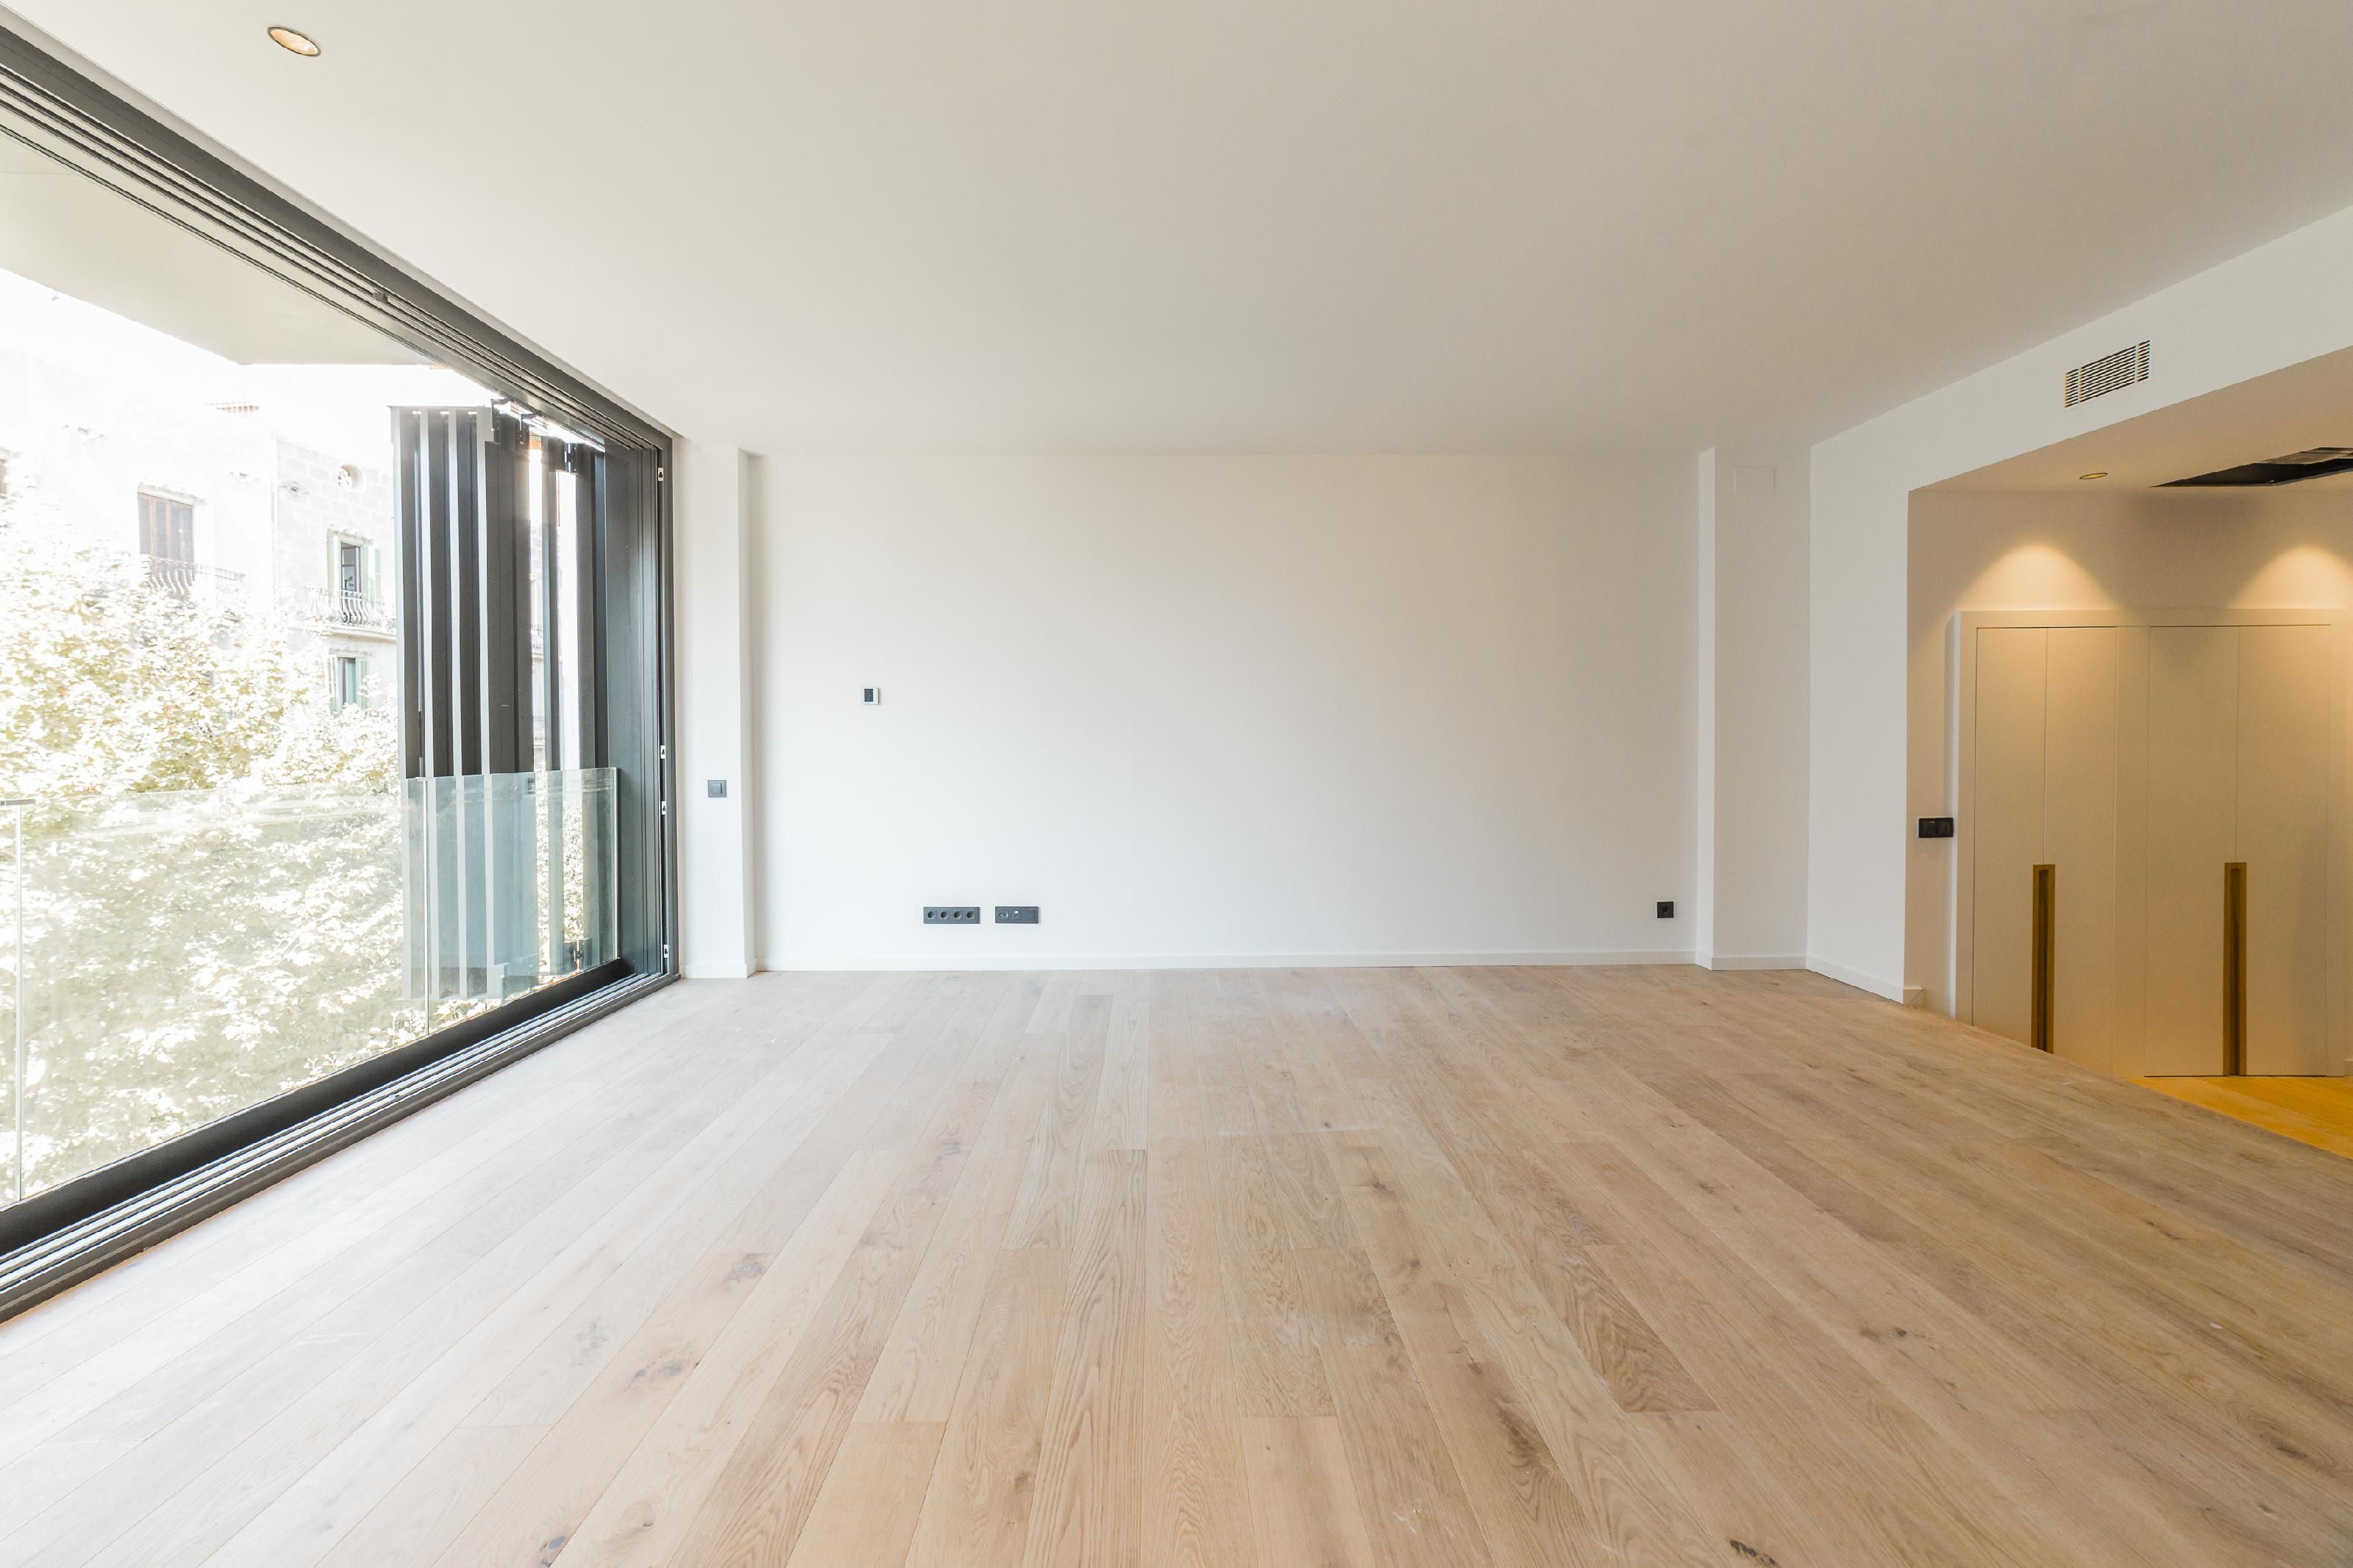 182474 Apartment for sale in Eixample, Old Left Eixample 1